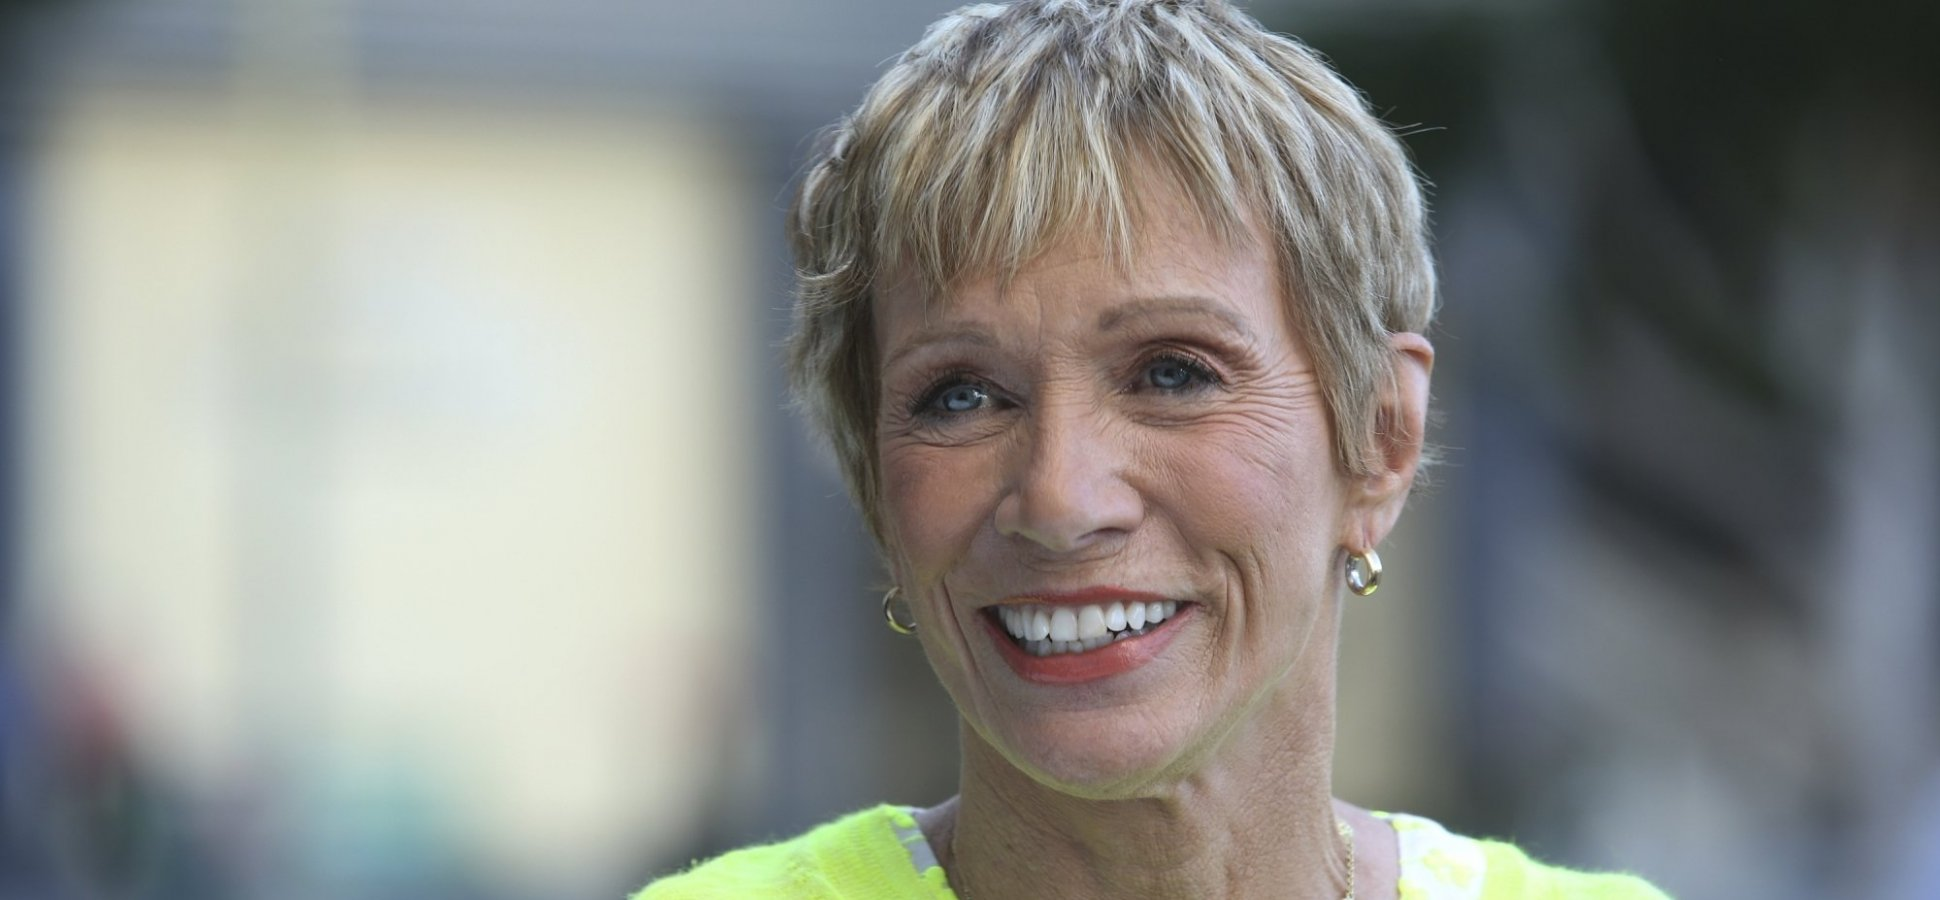 3 Things Barbara Corcoran Did to Convince Shark Tank Producers to Give Her a Second Chance After They Rejected Her for the Job